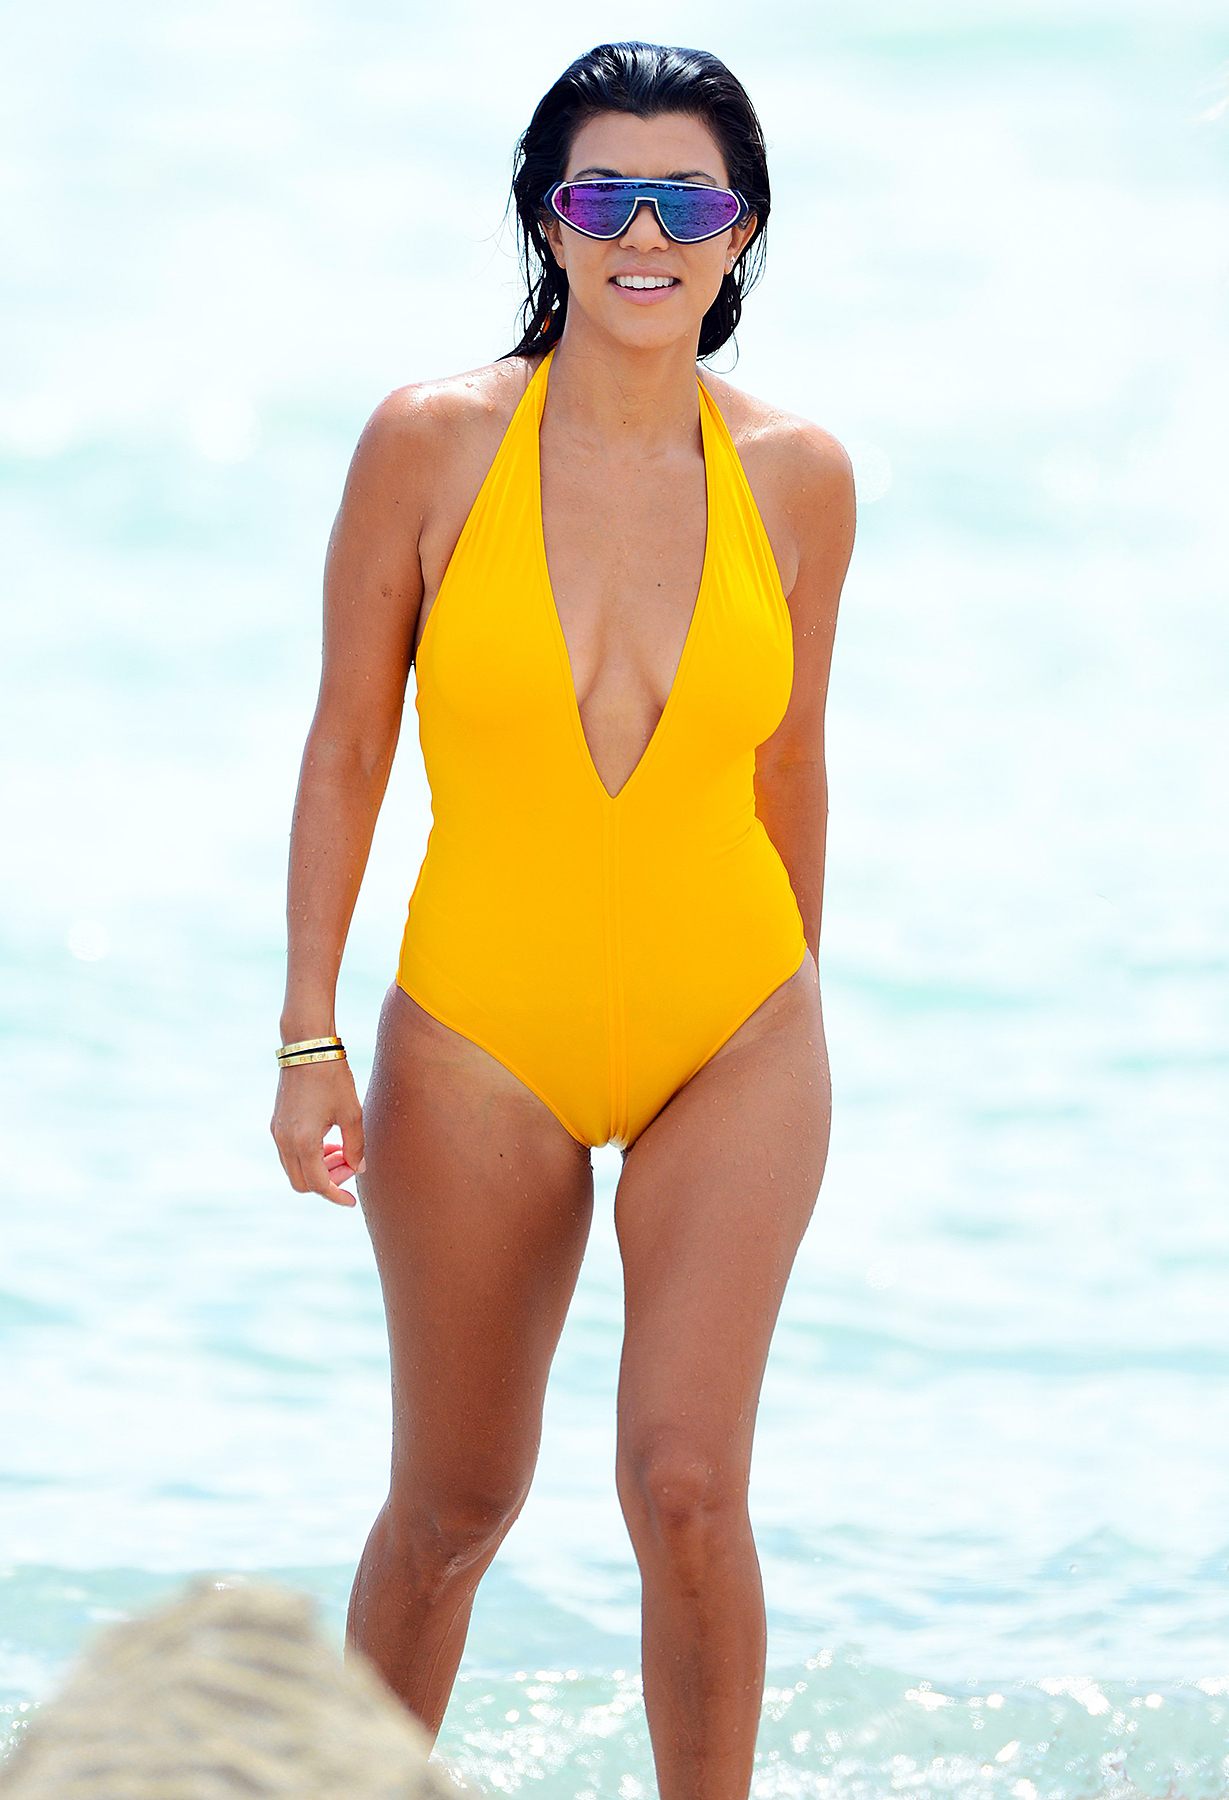 kourtney kardashian stuns in plunging yellow onepiece